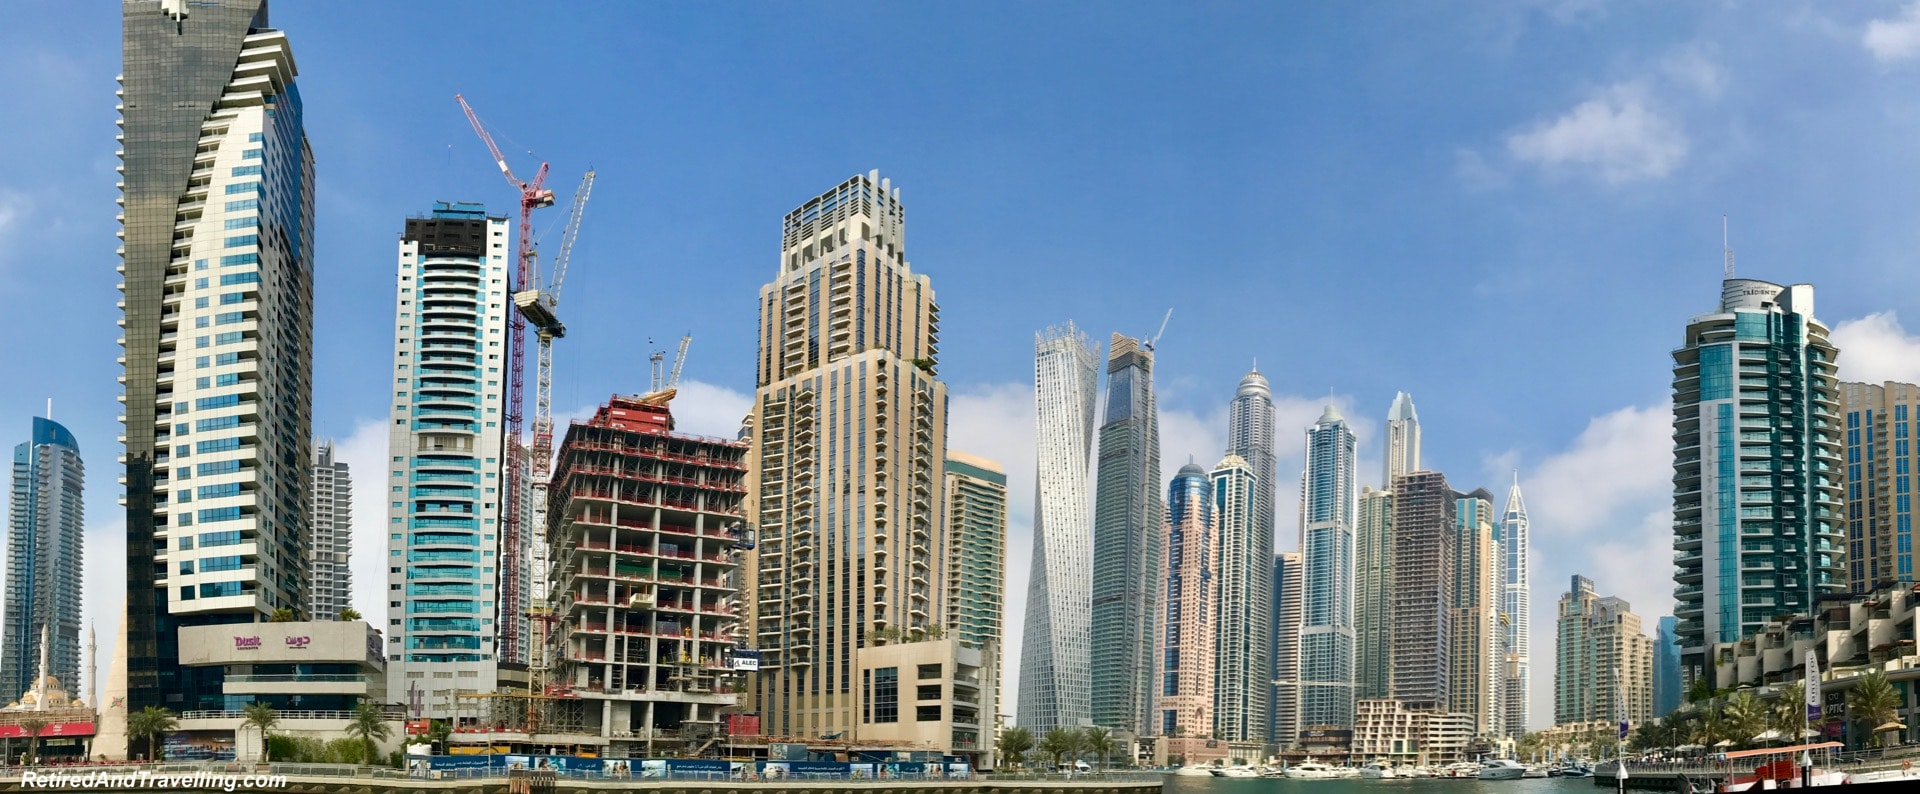 Dubai Marina - Buidings and Architecture - Things To Do In Dubai.jpg